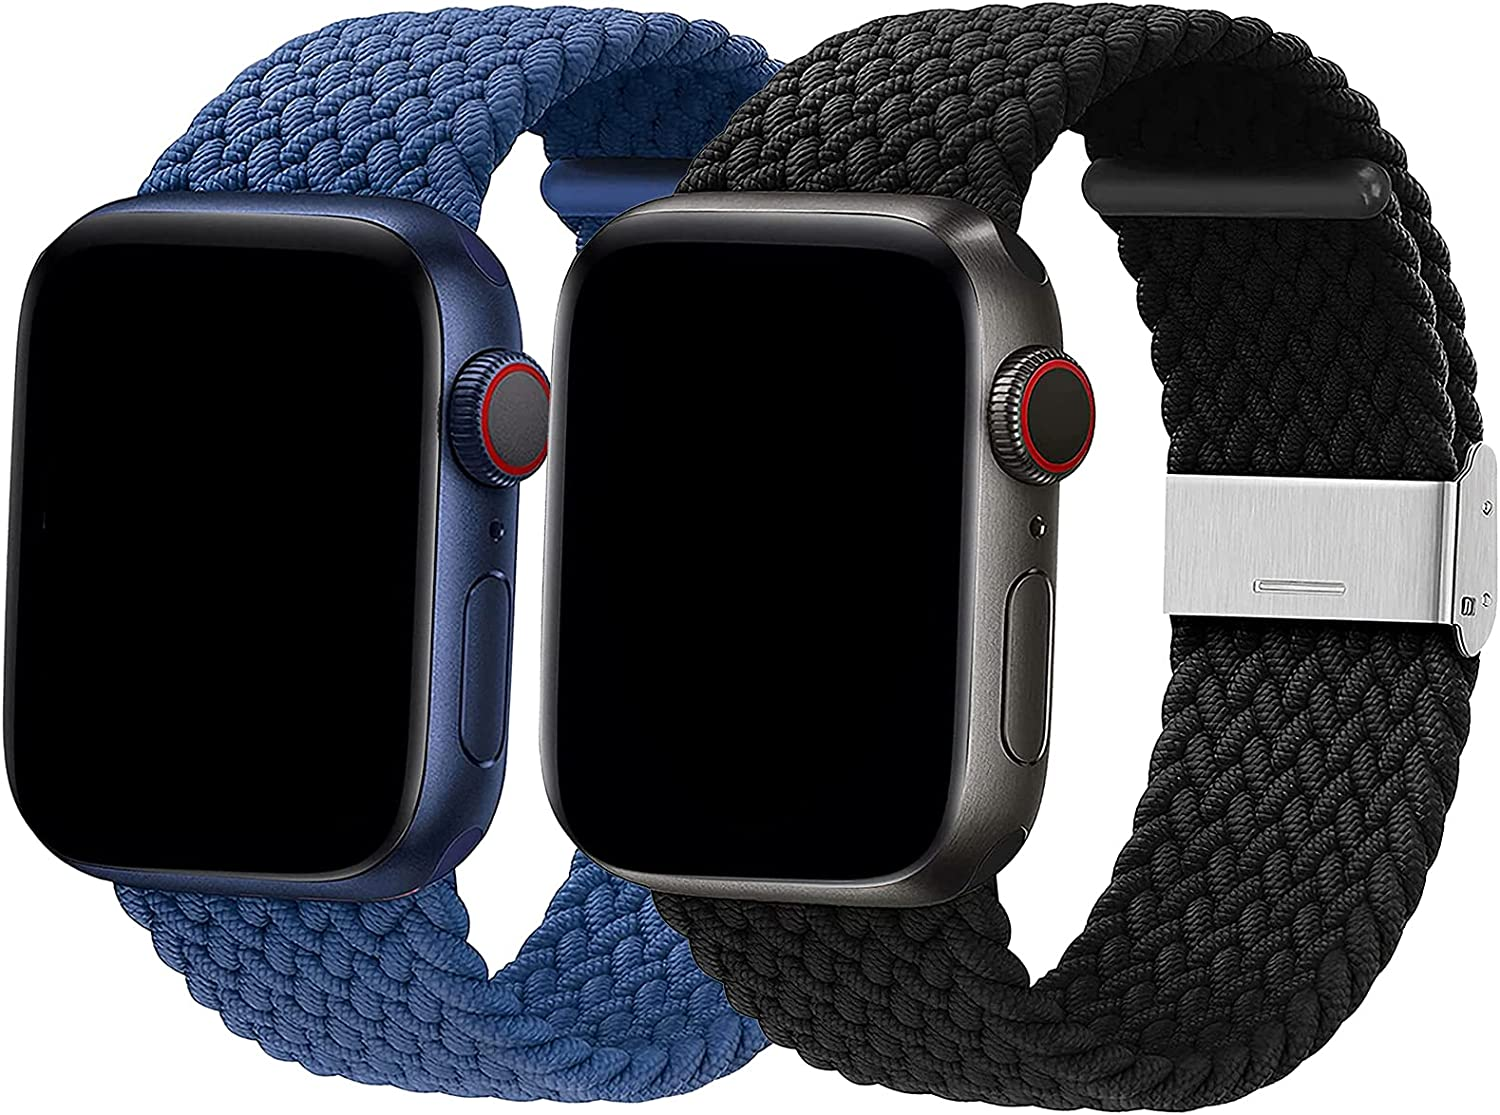 Braided Solo Loop Bands Compatible with Apple Watch 38mm 40mm 42mm 44mm Women Men, [2 Pack]-Adjustable Braided Solo Loop Stretchable Elastics Sport Wristband for iWatch Series 6/SE/5/4/3/2/1